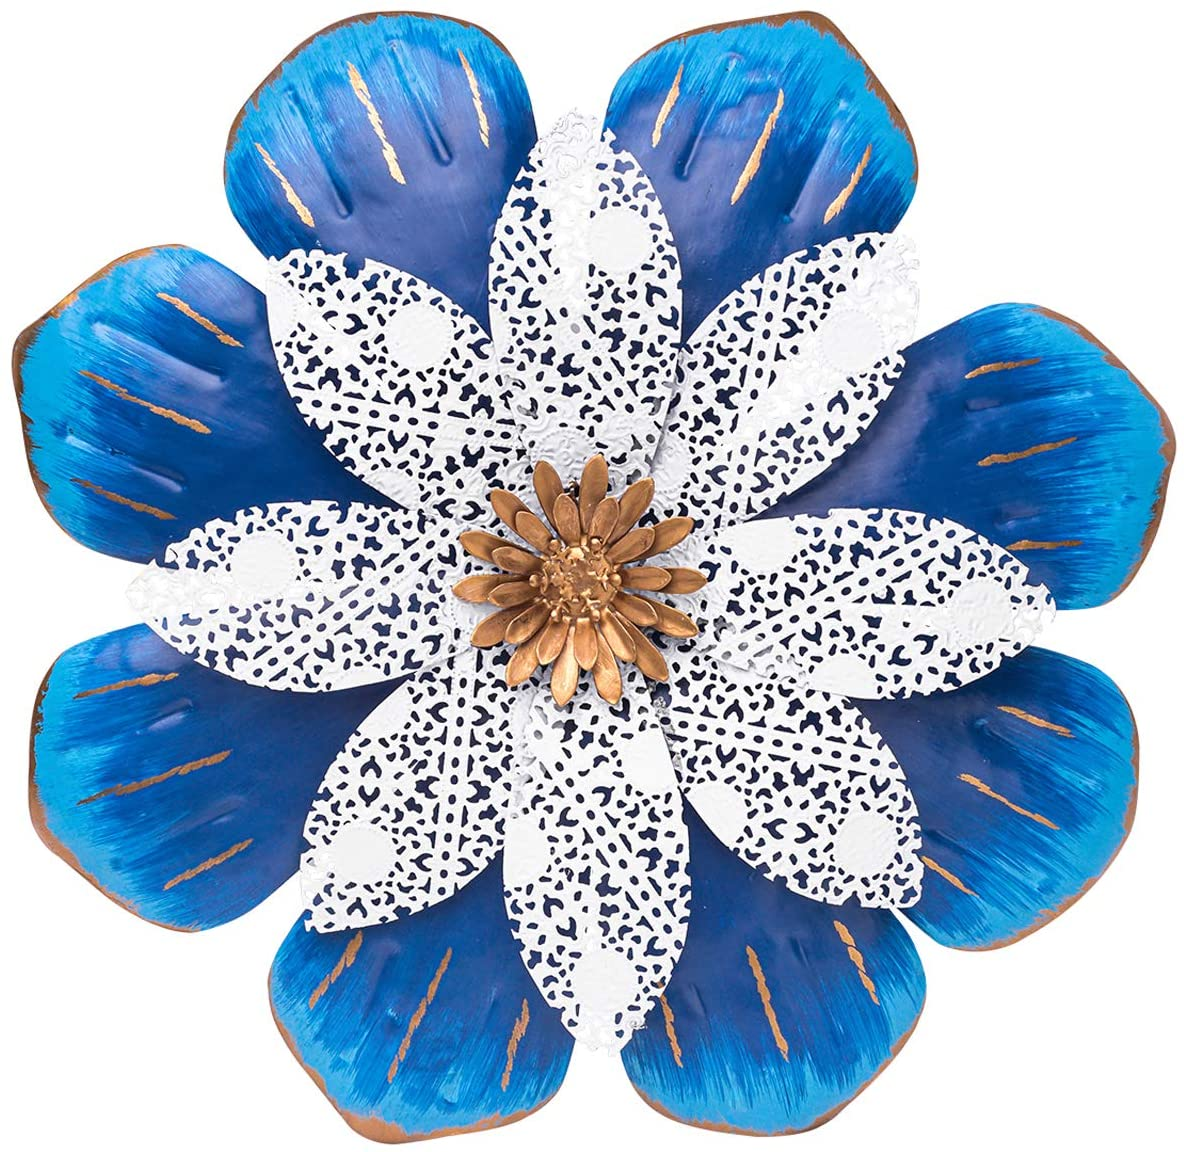 SONGXIN Metal Flower Wall Decoration Fall Autumn Outdoor Indoor Decor for Bathroom Living Room Bedroom or Porch Patio Fence Garden Colorful Wall Sculptures(13 Inch Blue and White)